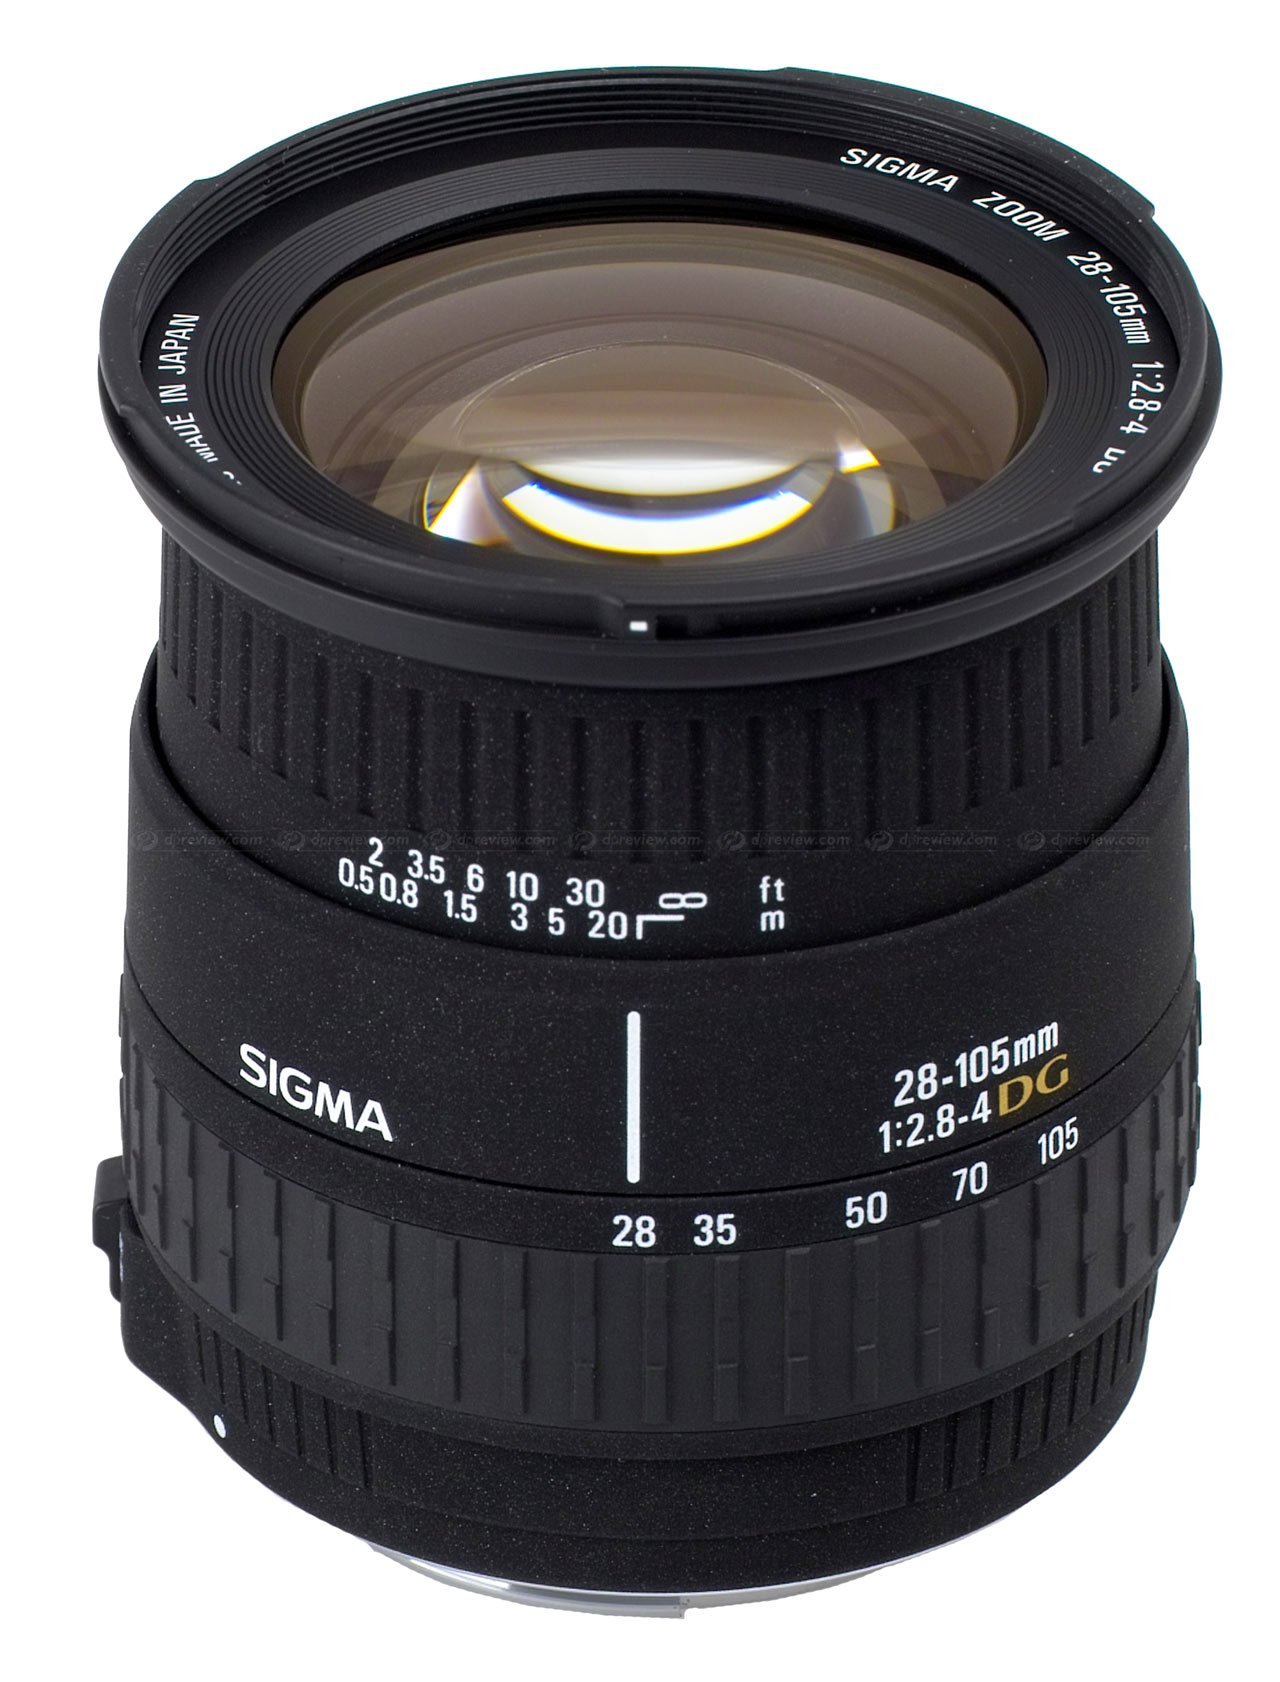 Sigma 28 105mm f28 4 dg digital photography review a large aperture standard zoom lens that covers wide angle to telephoto and is ideal for full frame digital slr cameras jeuxipadfo Gallery